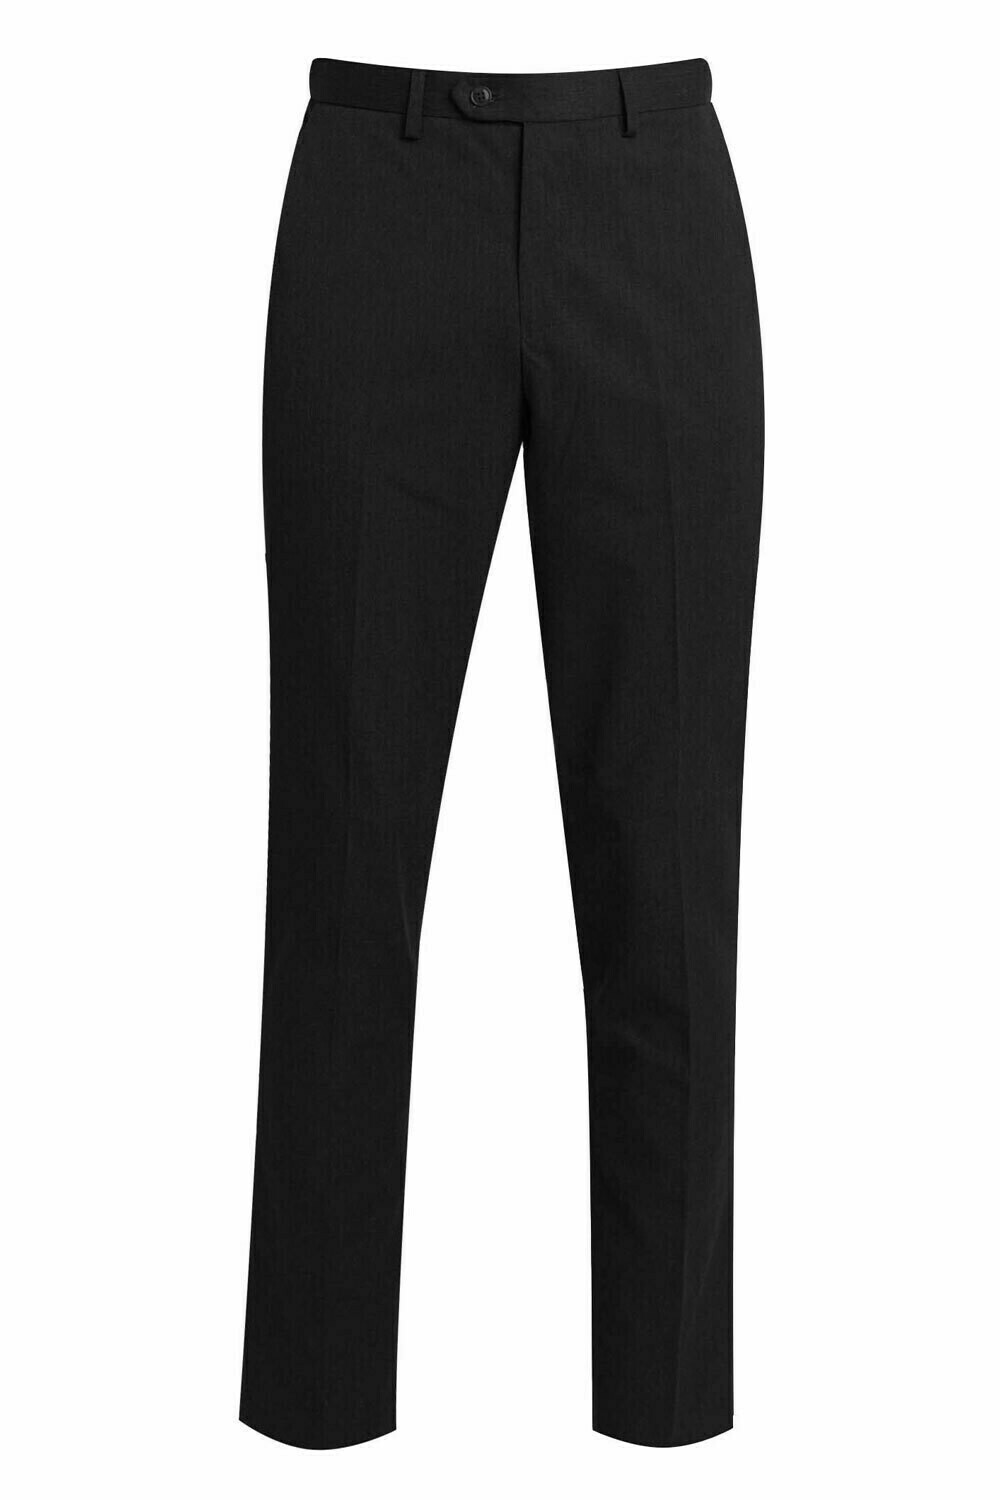 'ON SALE' Senior School Boys Trouser with zips on both pockets 'Best Seller'